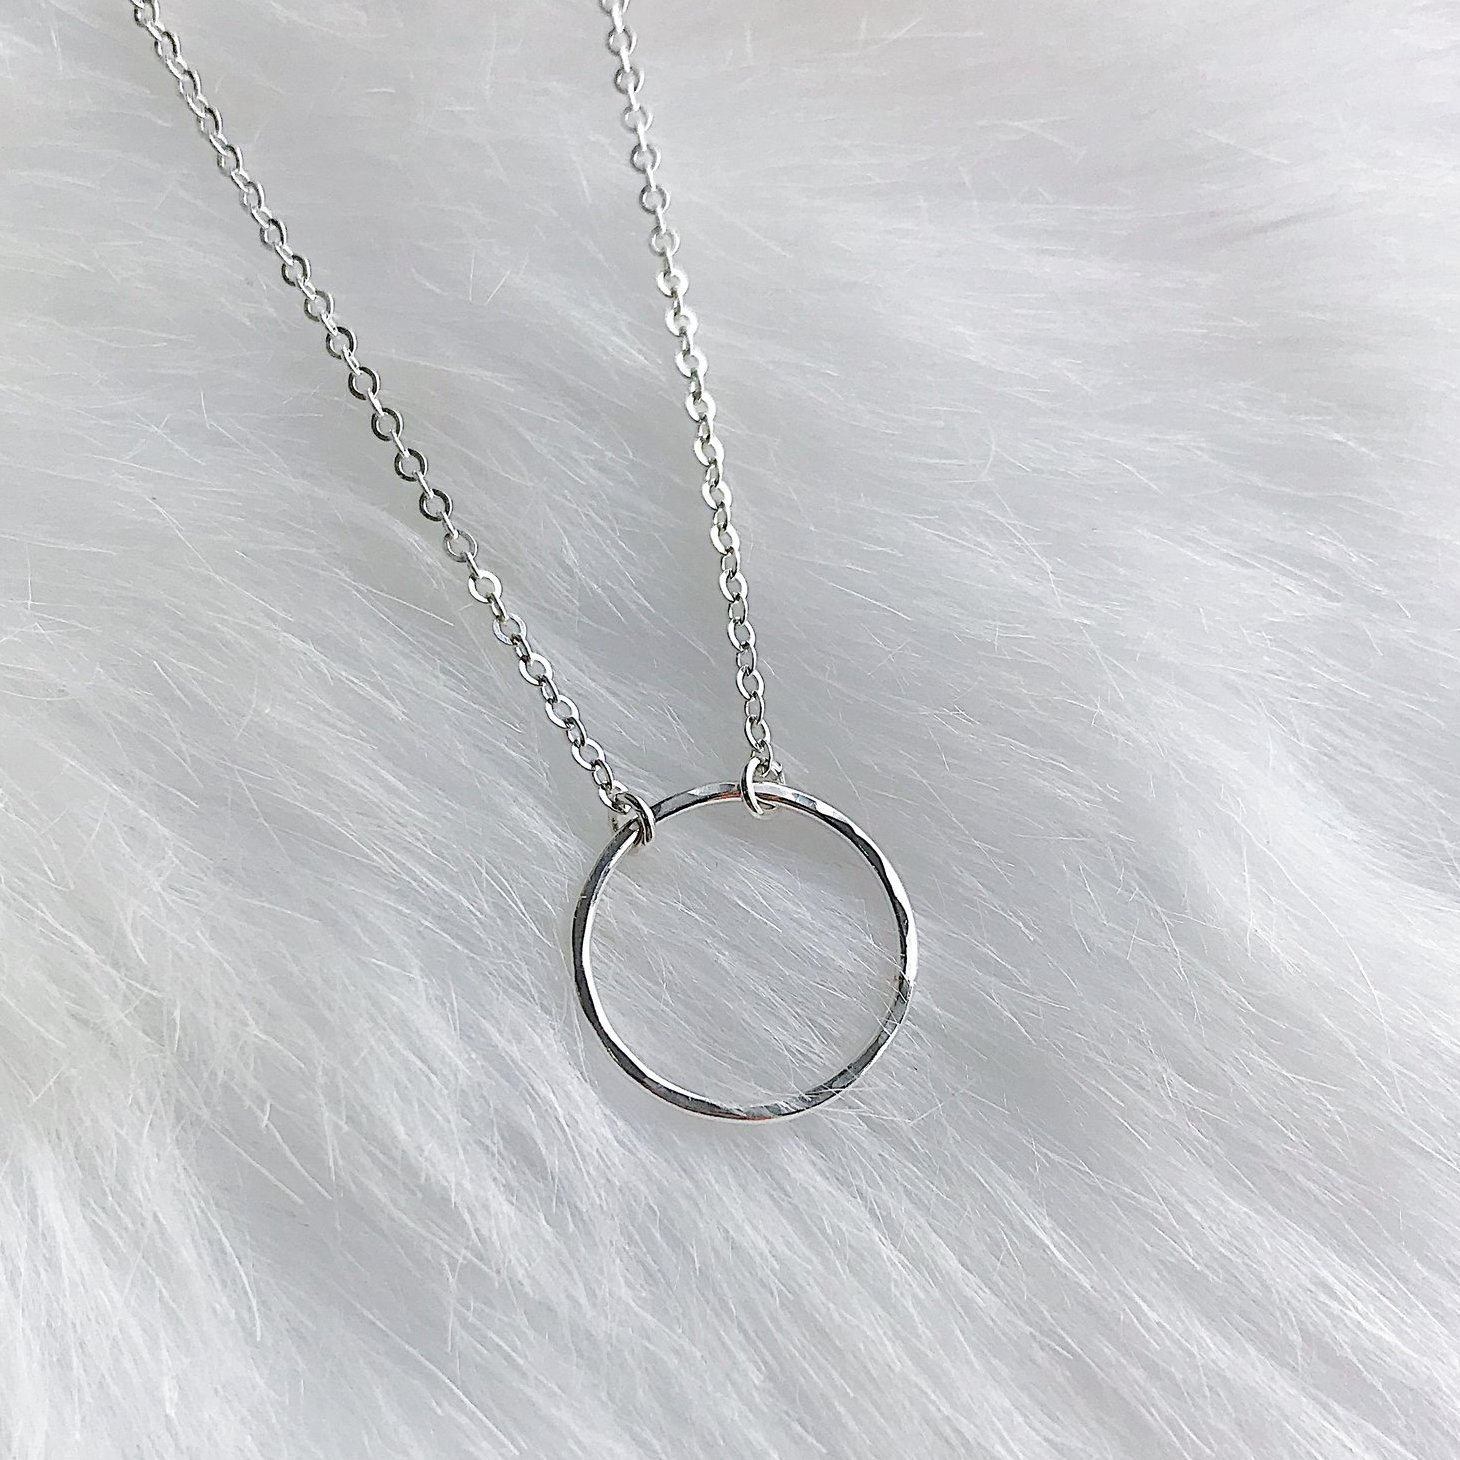 Jewels By SJB - Circle Necklace (Silver) - This circle choker is my all time favourite necklace, I just love how minimal yet beautiful it is! You can choose to wear it on it's own or layer it with some other beautiful pieces from the Jewels By SJB range.(CODE: 'THRIVINGONPLANTS' for 10% OFF)